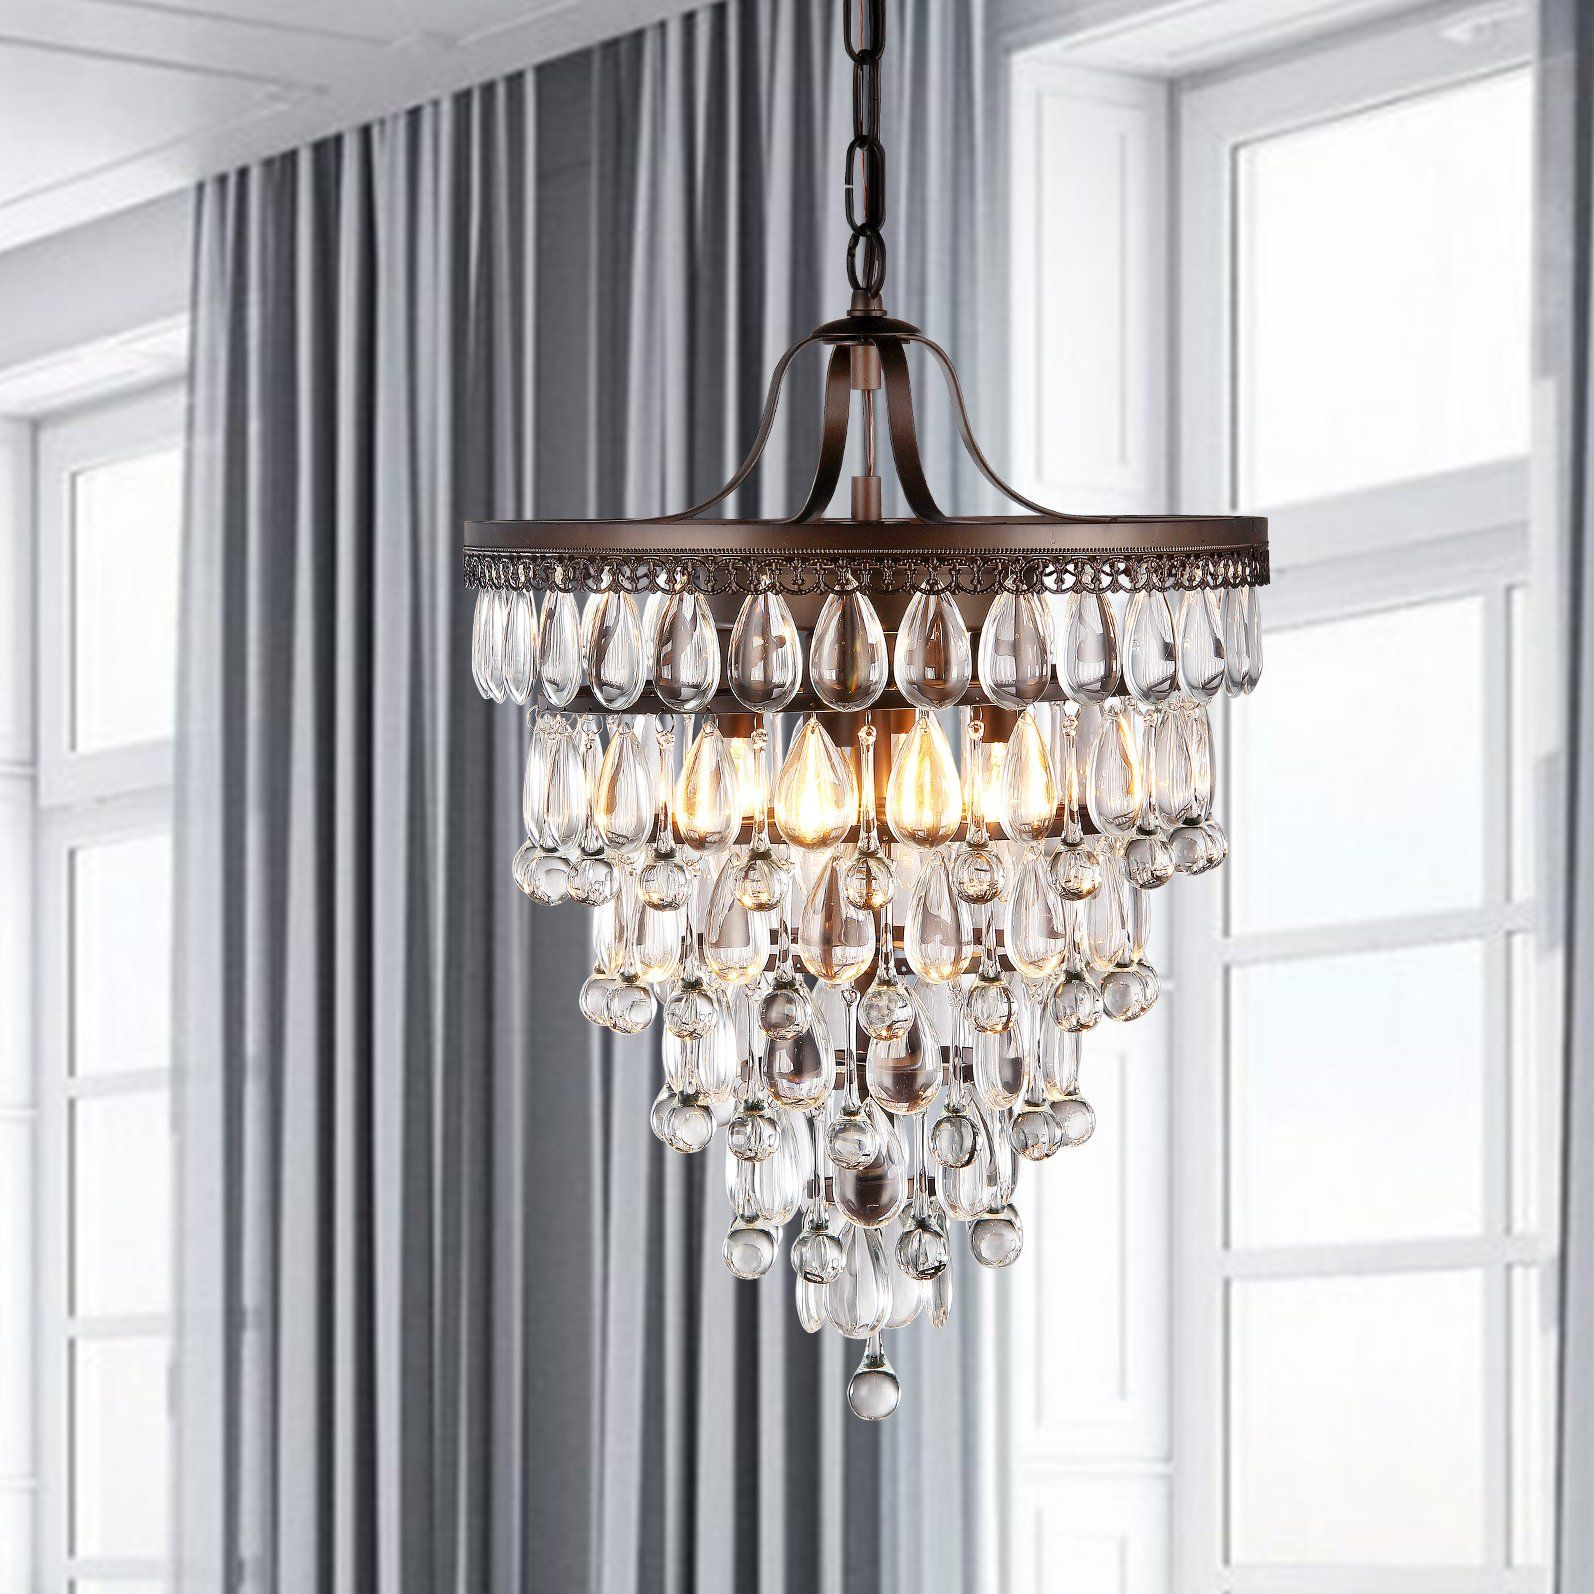 Outland 4 Light Crystal Chandelier | Lights | Chandelier Pertaining To Bramers 6 Light Novelty Chandeliers (View 15 of 30)